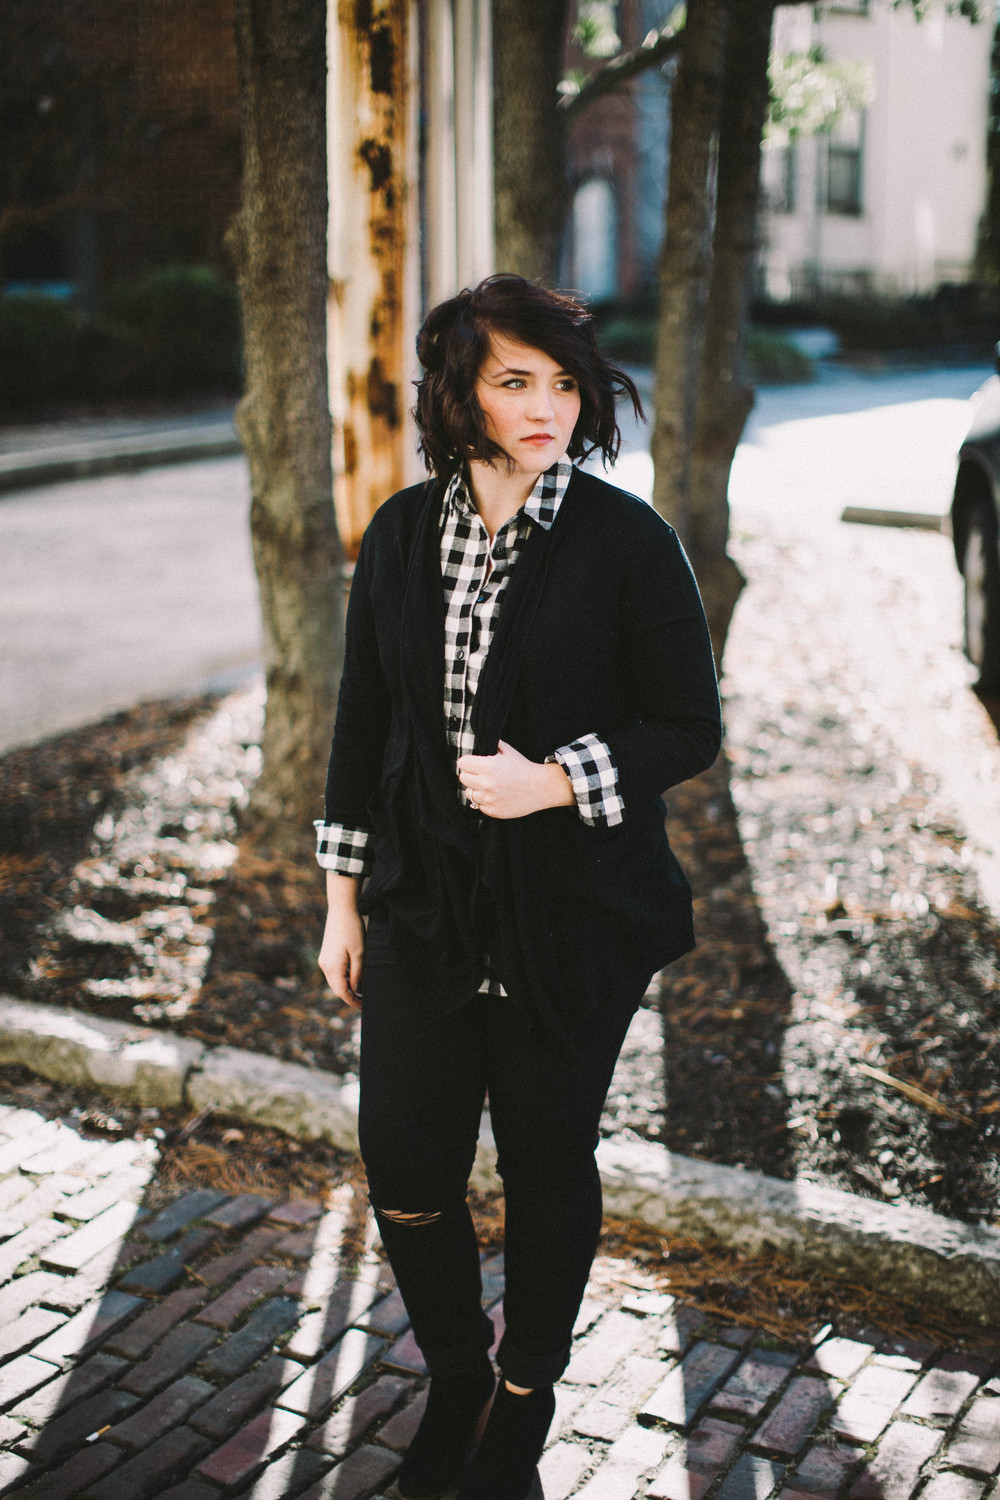 Black, White + Flannel via www.chelceytate.com